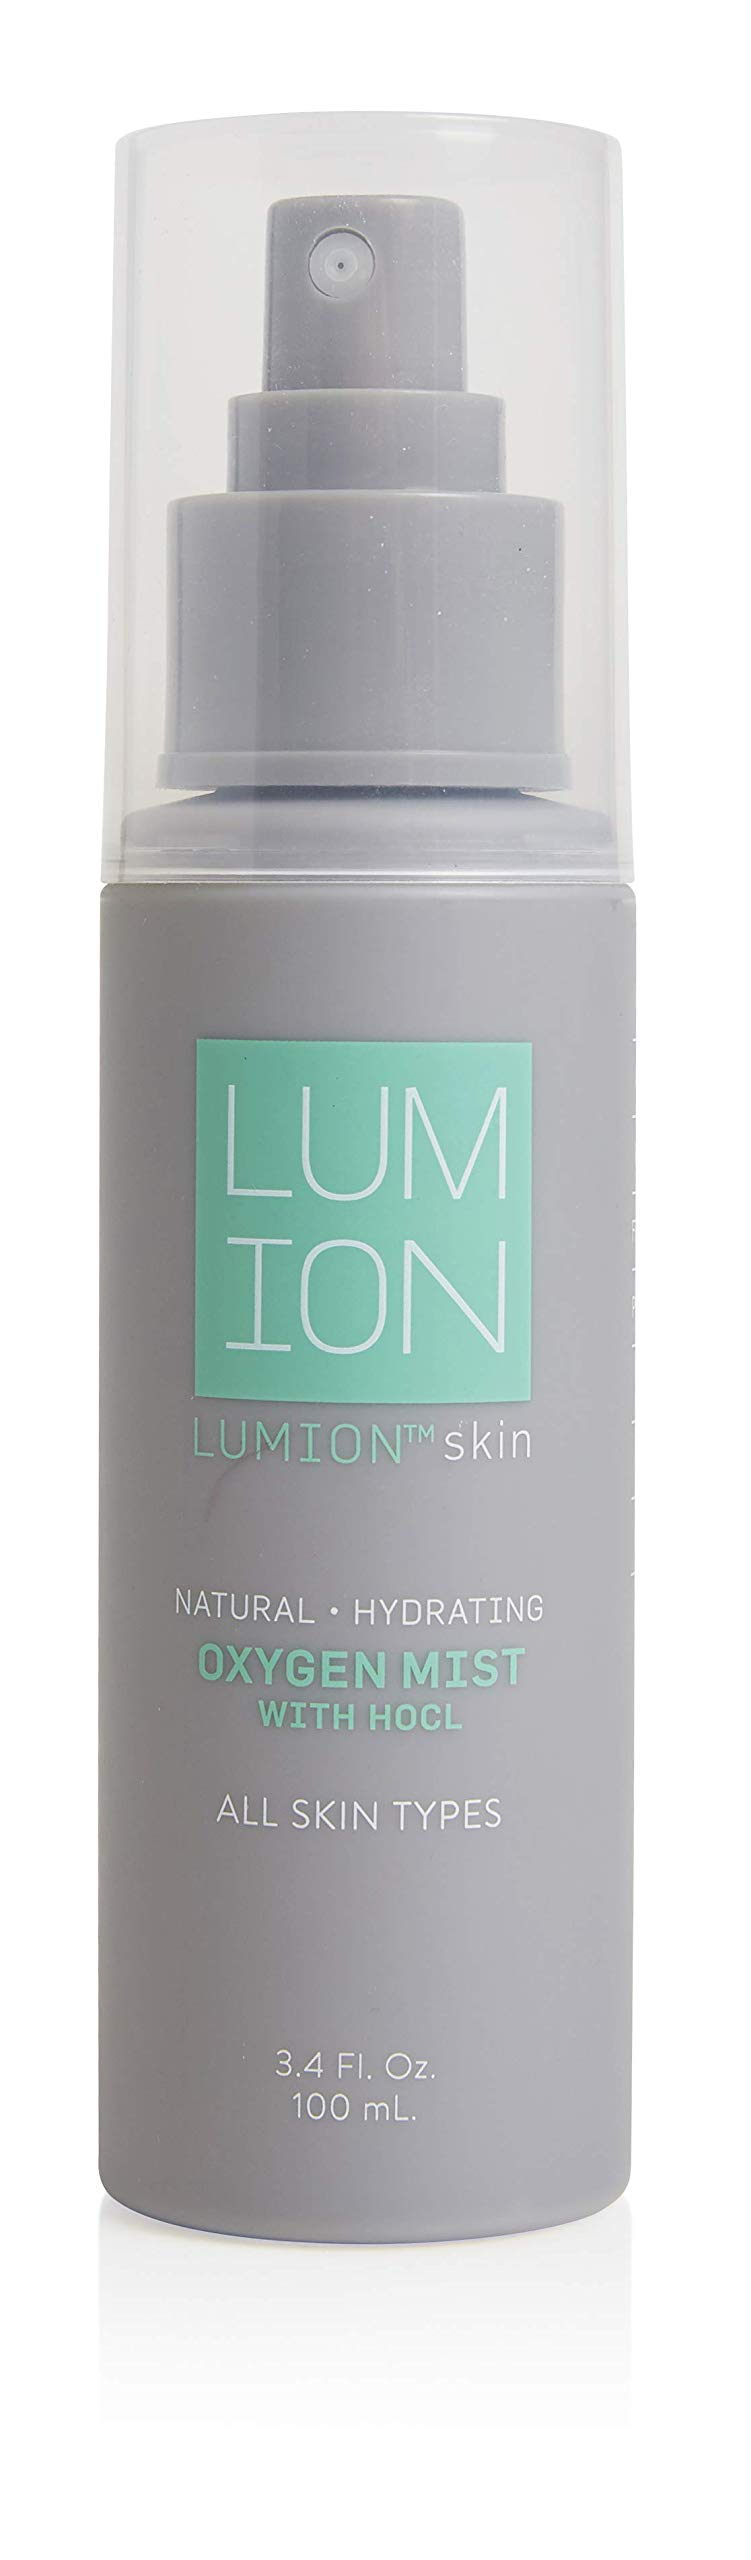 LUMIONskin Oxygen Mist with HOCL, Cleansing, Hydrating, Non-Irritating Every Day Mist, Ideal for Blemish Prone Skin, Vegan and Cruelty Free, 3.4 fl oz.